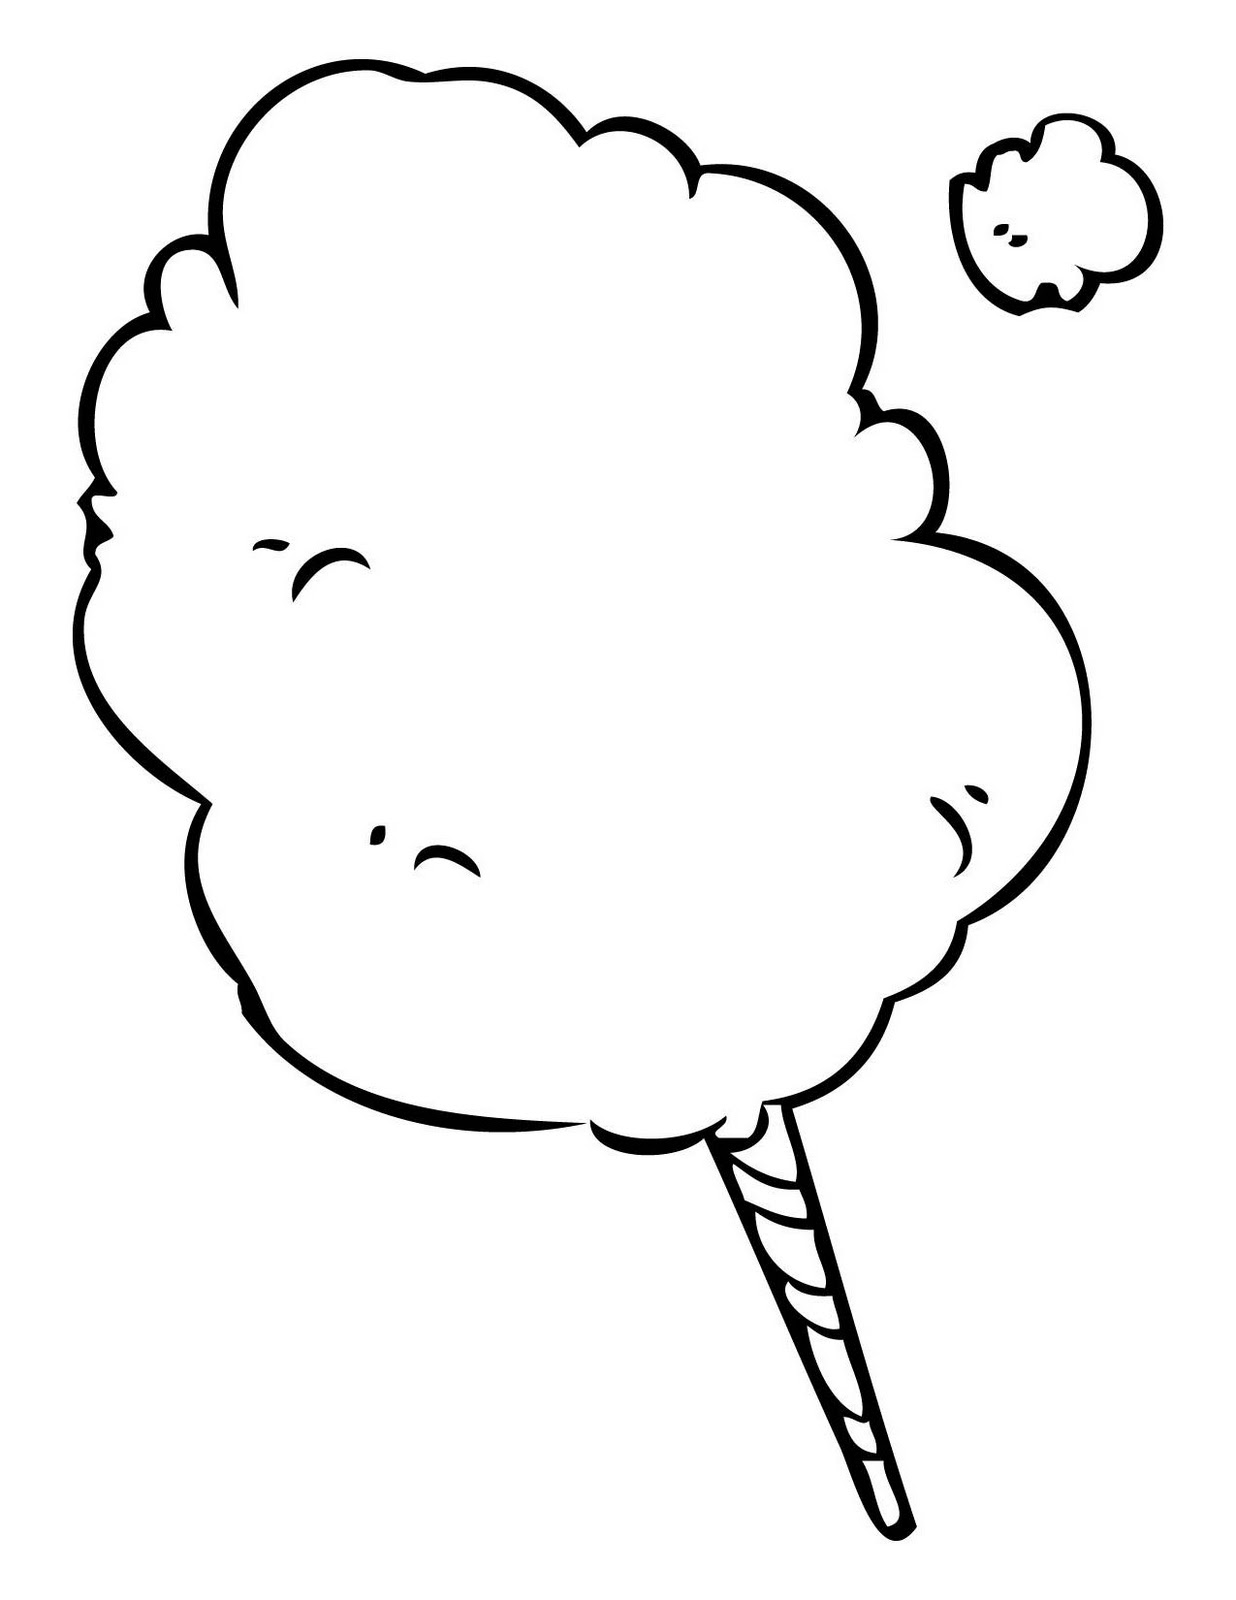 hight resolution of cotton candy colouring pages